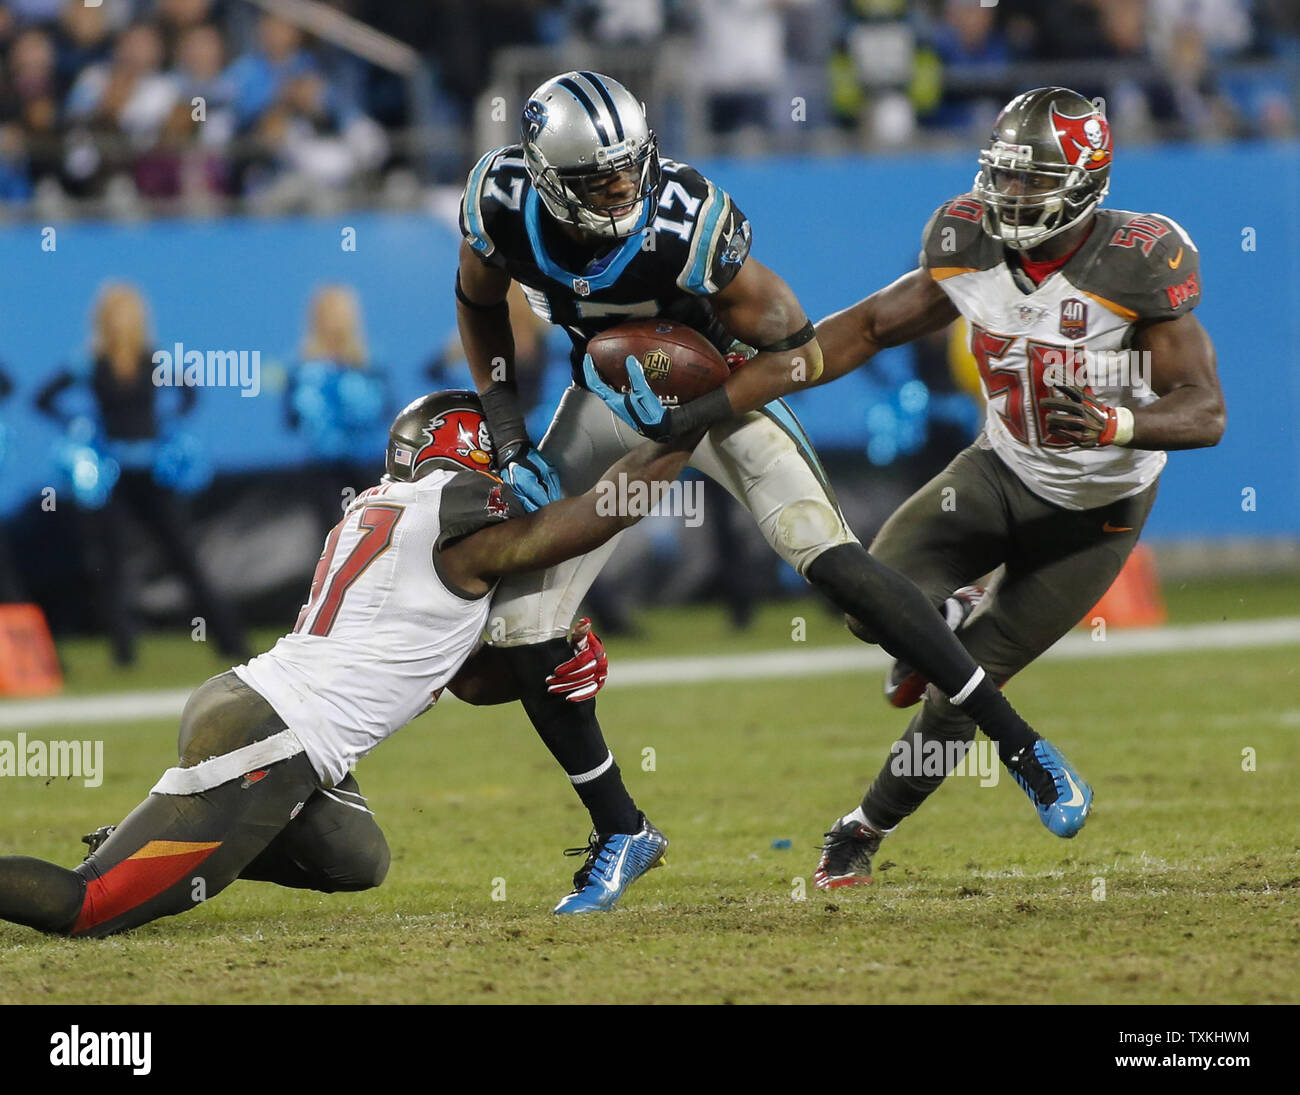 Carolina Panthers wide receiver Devin Funchess, center, runs after a catch for a first  down as Tampa Bay Buccaneers  defenders try to make a tackle in the second half of an NFL football game at Bank of America Stadium in Charlotte, North Carolina on January 3, 2016. Carolina won 38-10.   UPI/Nell Redmond . Stock Photo